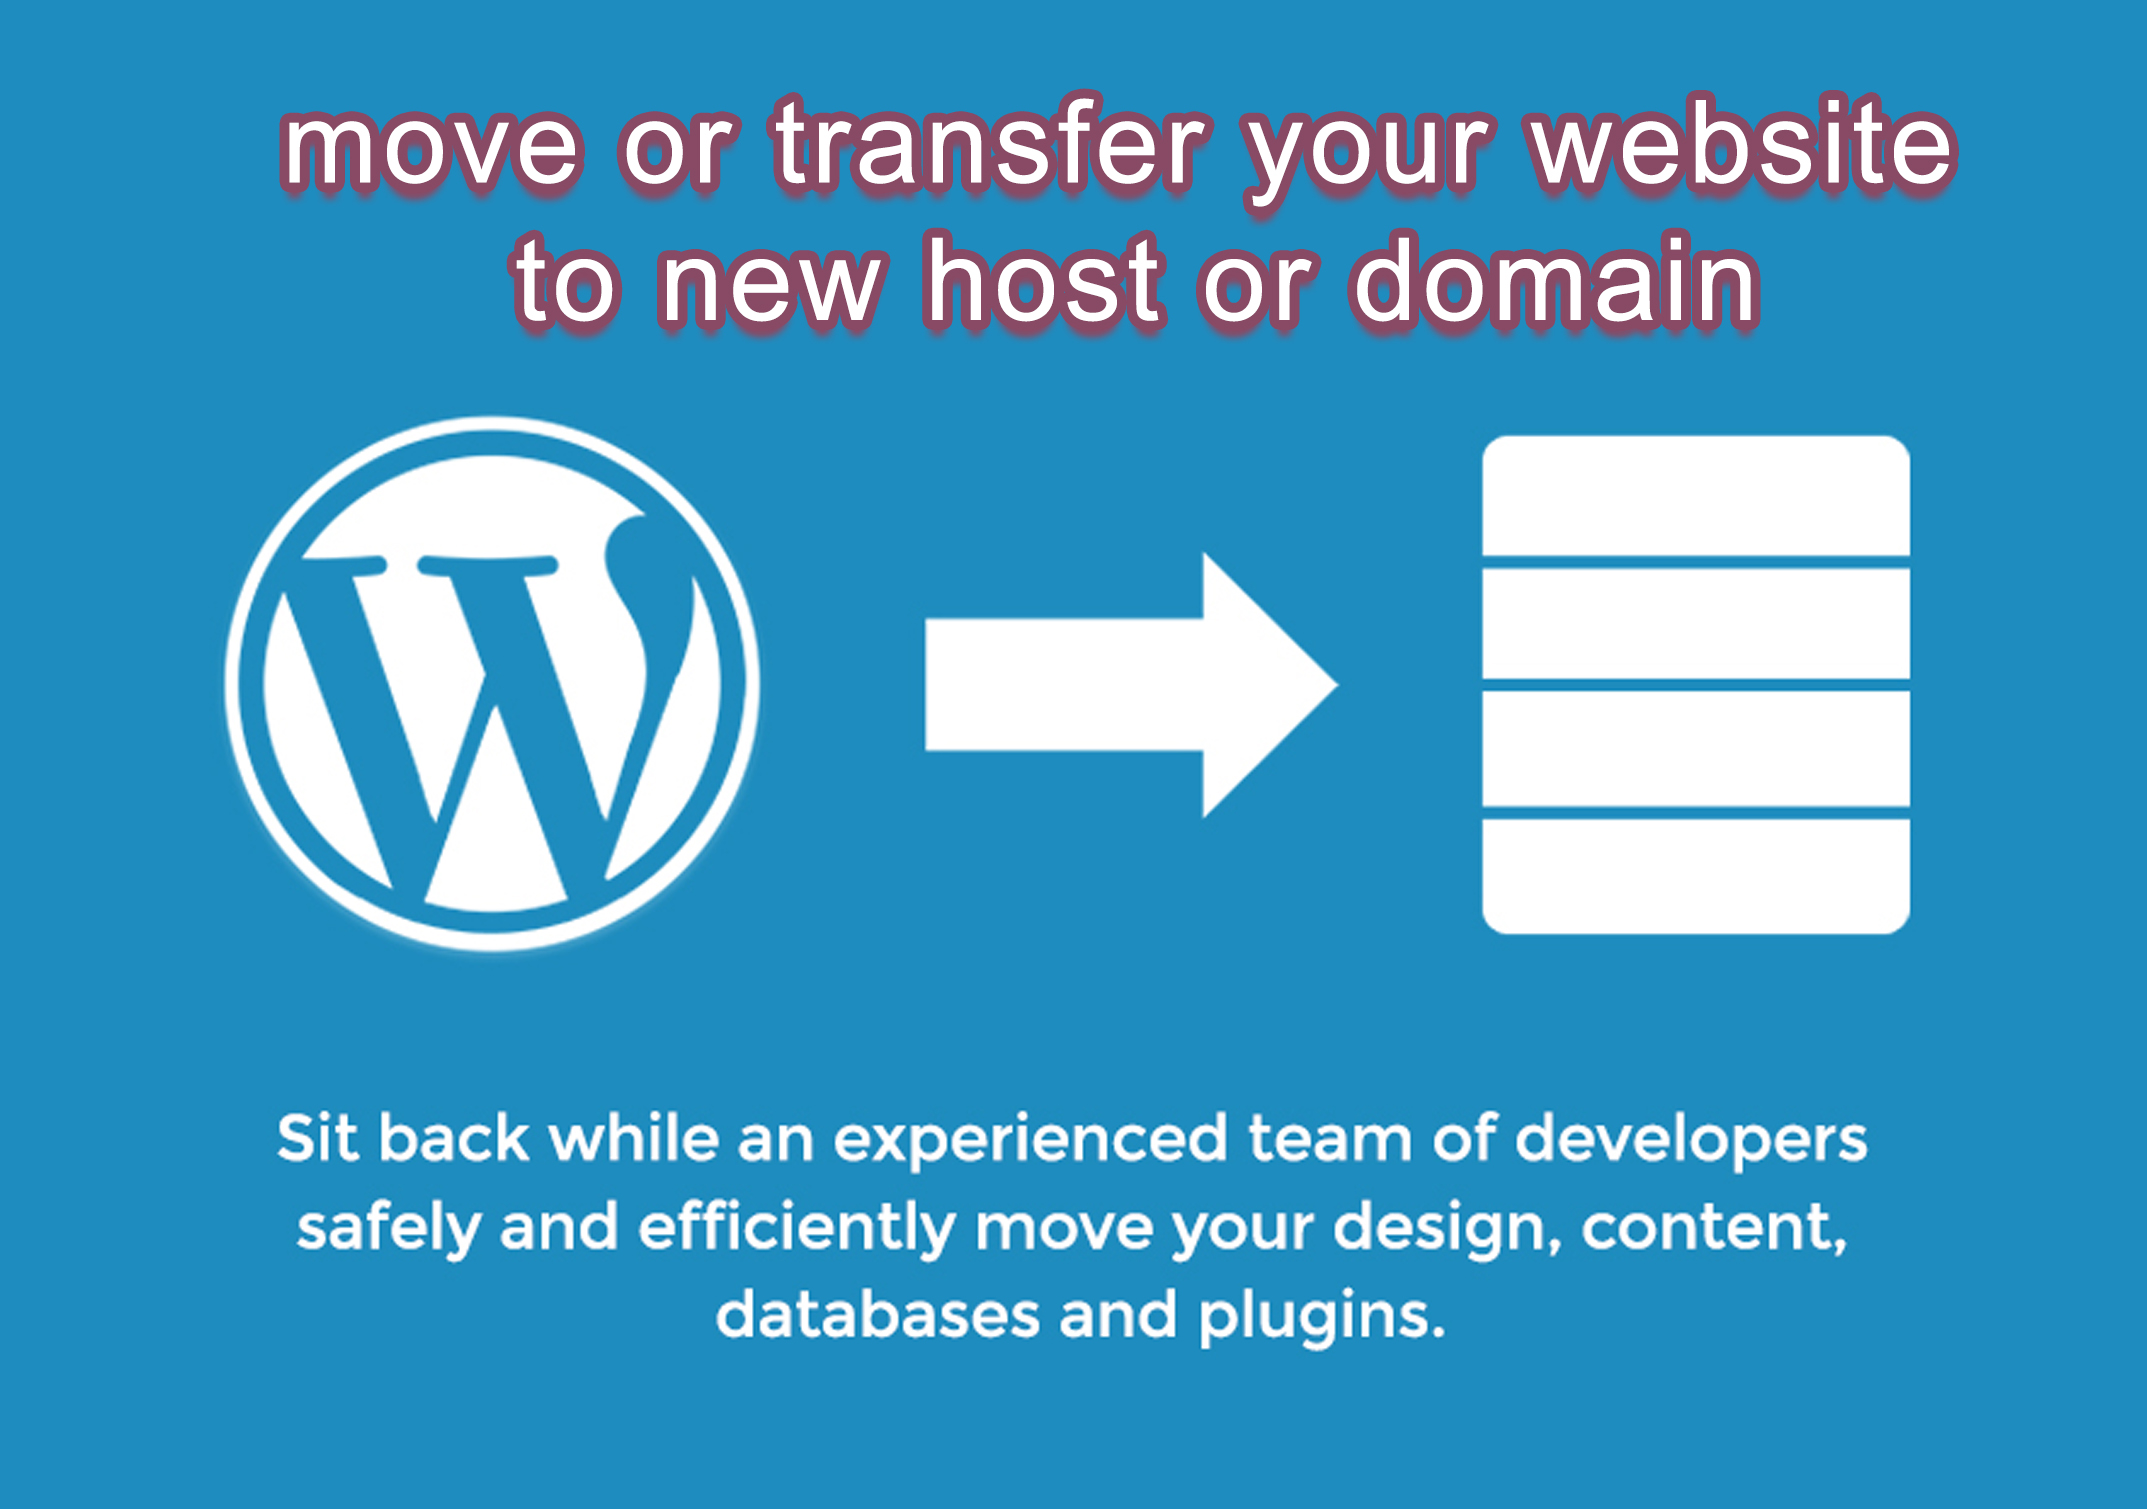 move or transfer your website to new host or domain